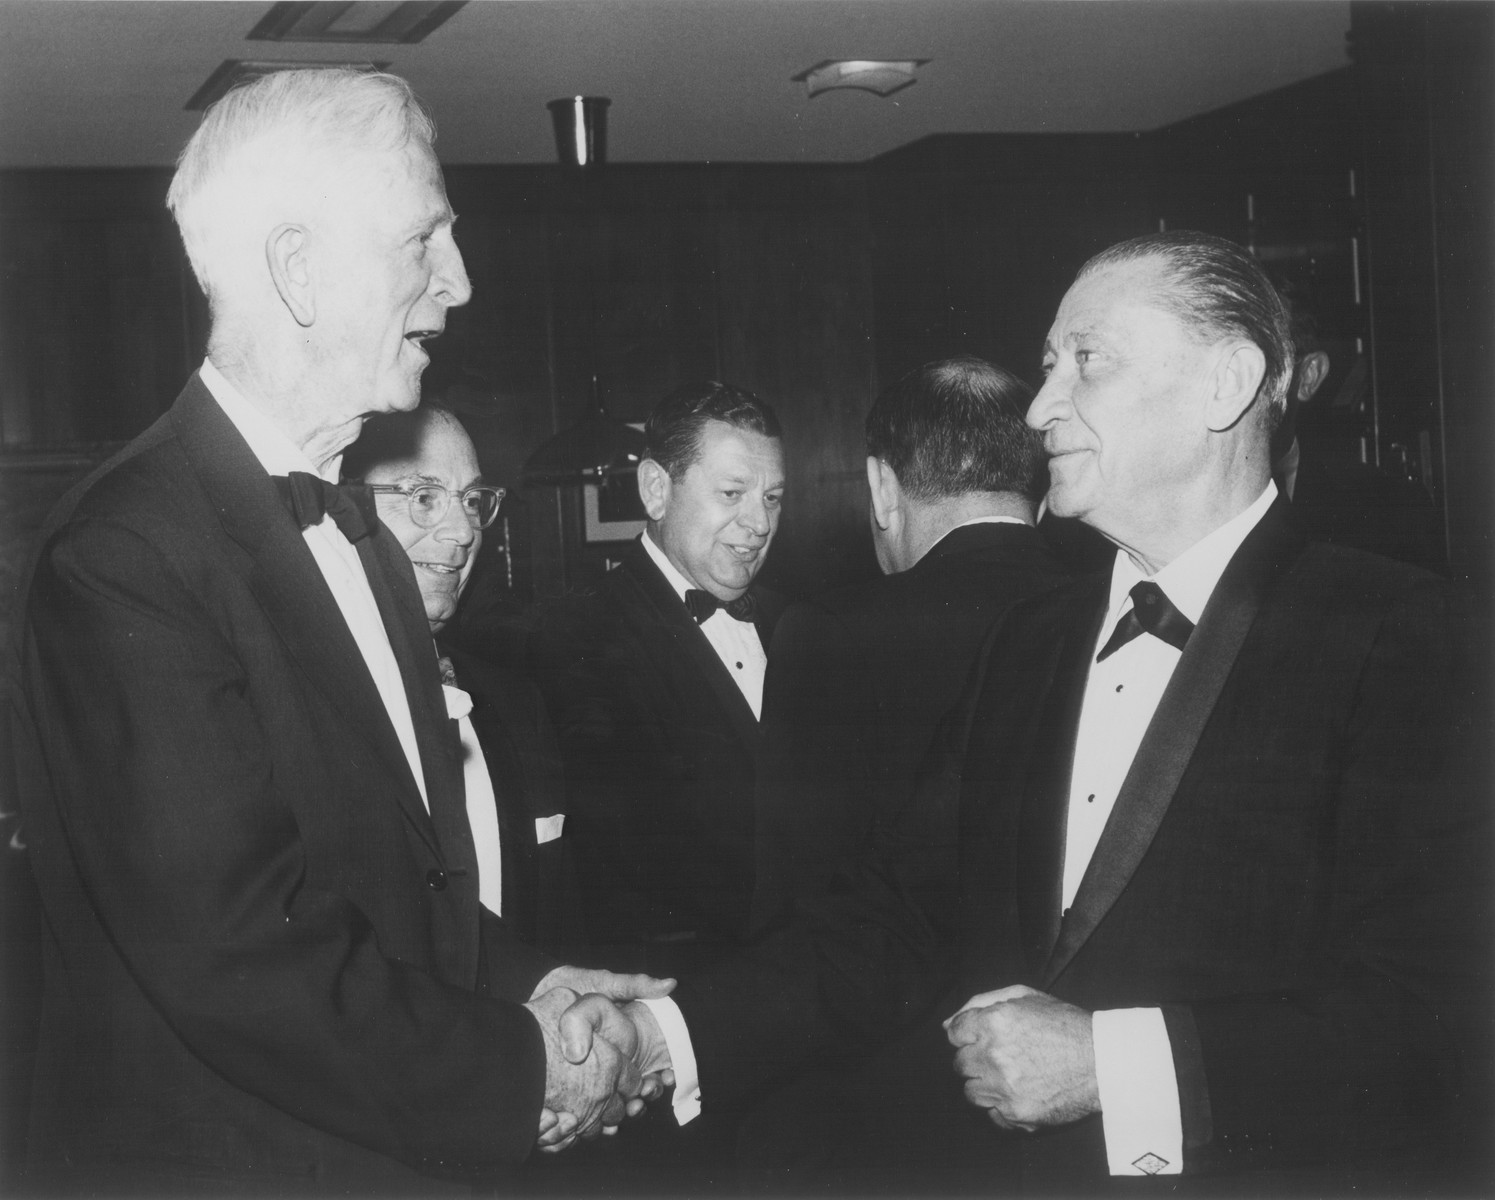 American Jewish philanthropist Abraham S. Kay (right) shakes hands with James G. McDonald (left) at an affair in Washington, D.C.  Pictured from left to right are: James G. McDonald, unknown, Stanley Weiner, Abraham Harman, and Abraham S. Kay.